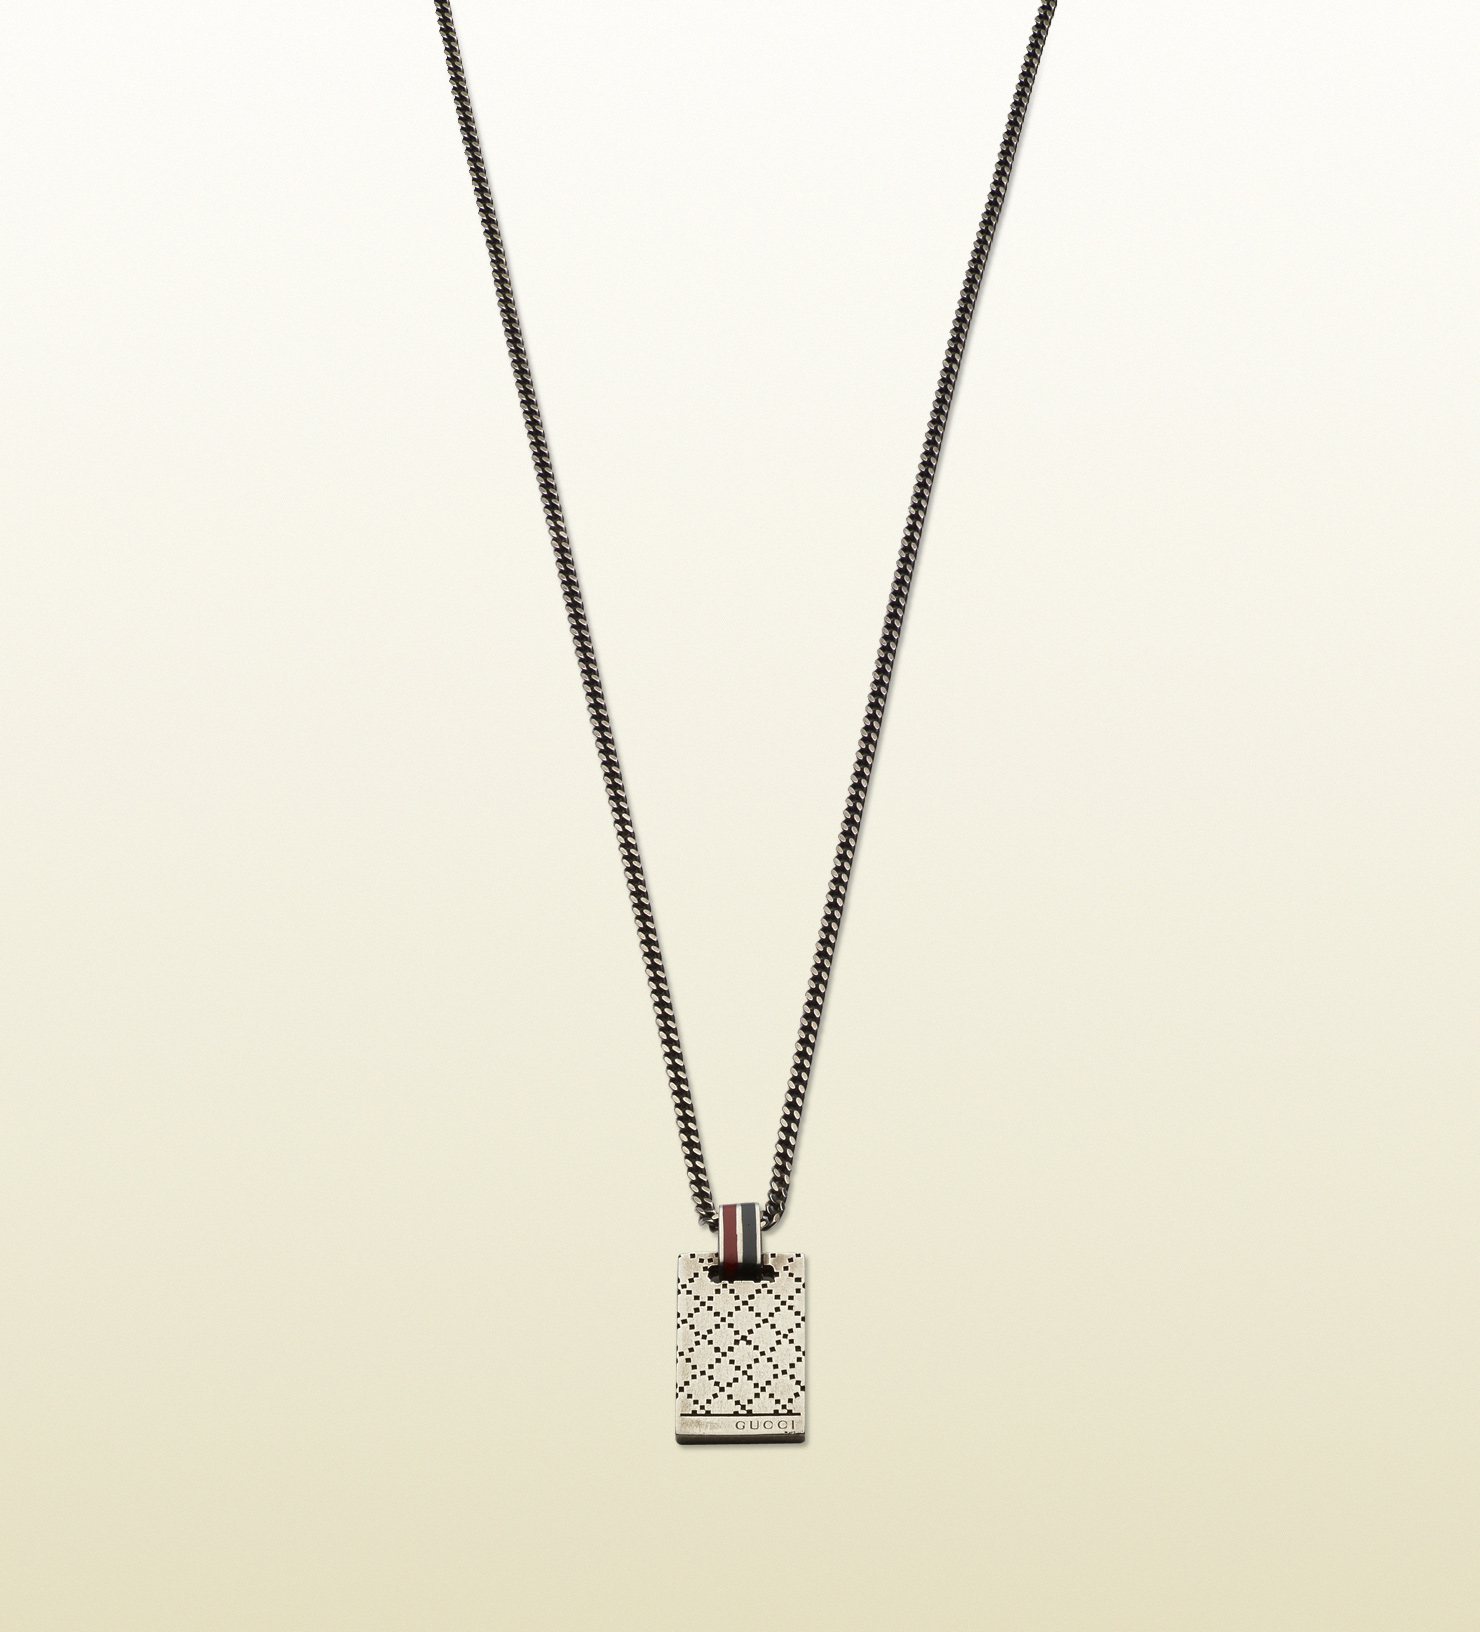 gucci necklace mens. gallery gucci necklace mens e